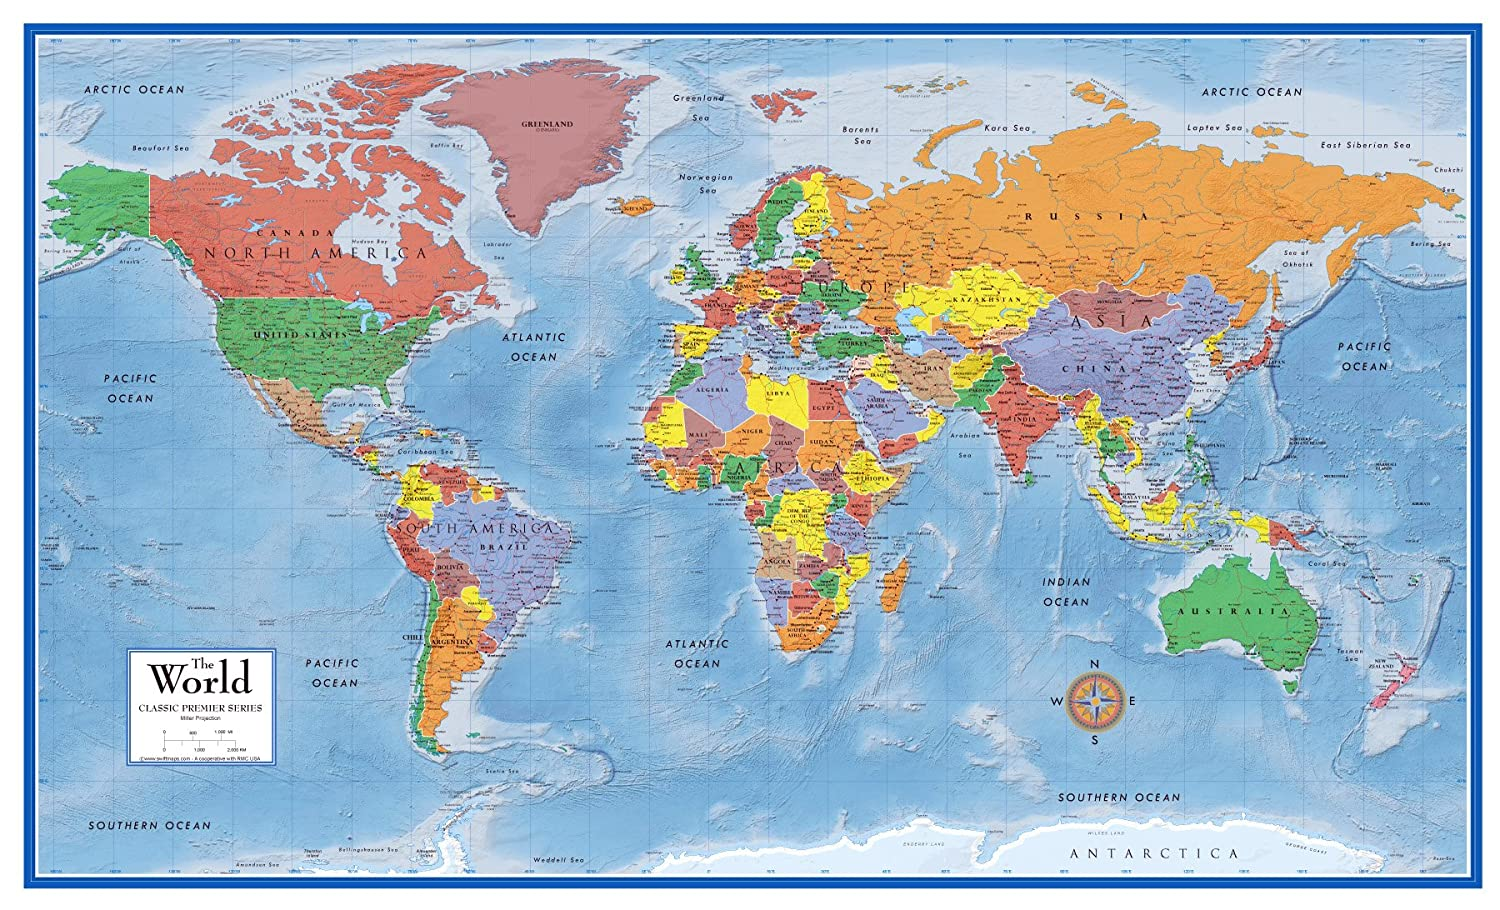 Amazon.com: 48x78 World Classic Premier Wall Map Mega Poster (48x78 ...